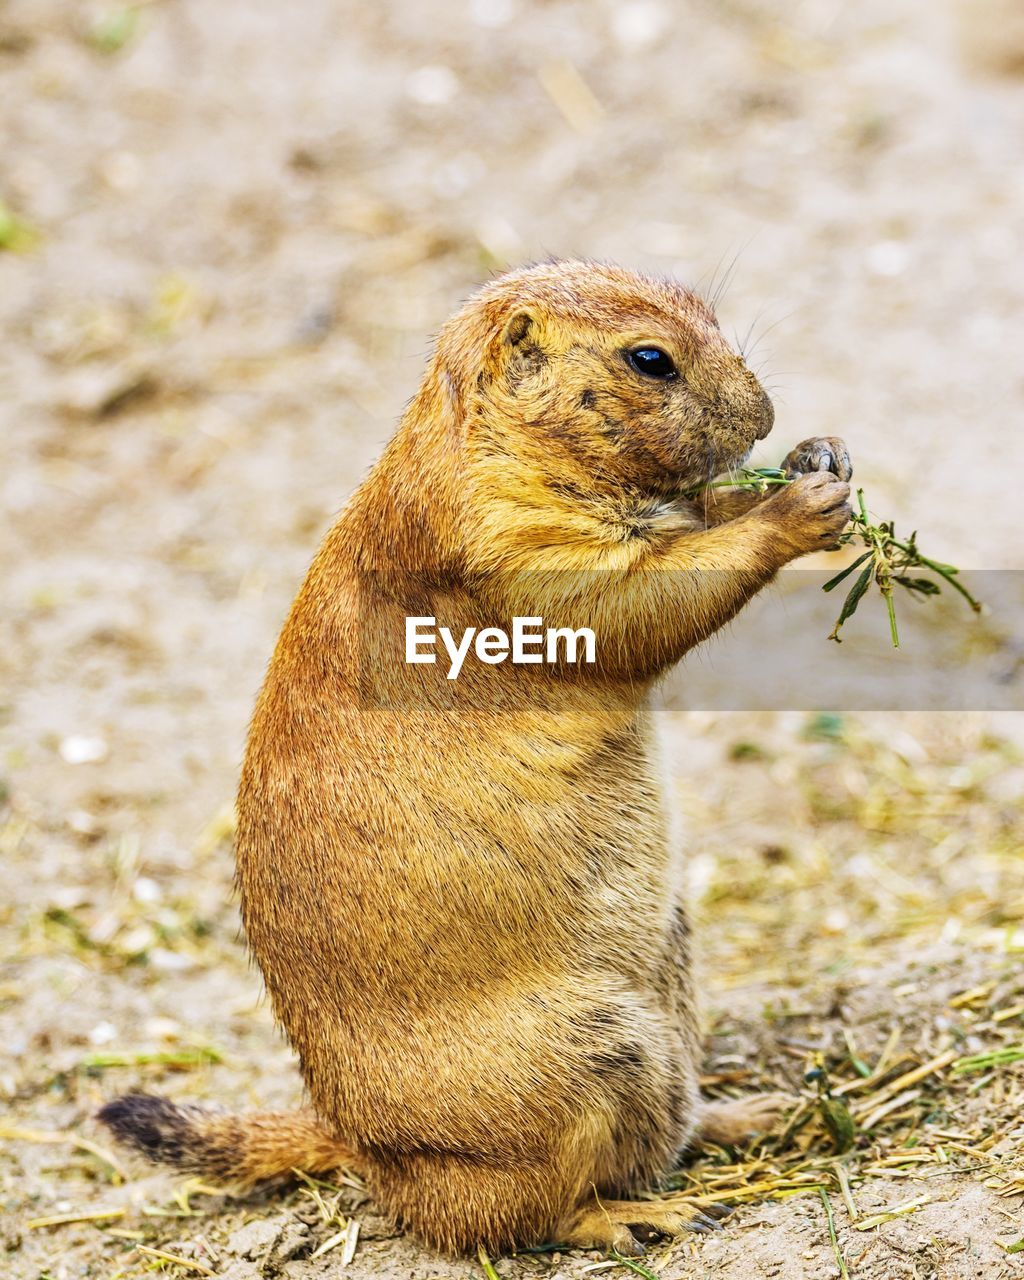 animal themes, animal, one animal, animal wildlife, mammal, animals in the wild, rodent, field, land, focus on foreground, no people, vertebrate, nature, day, eating, brown, close-up, squirrel, outdoors, looking